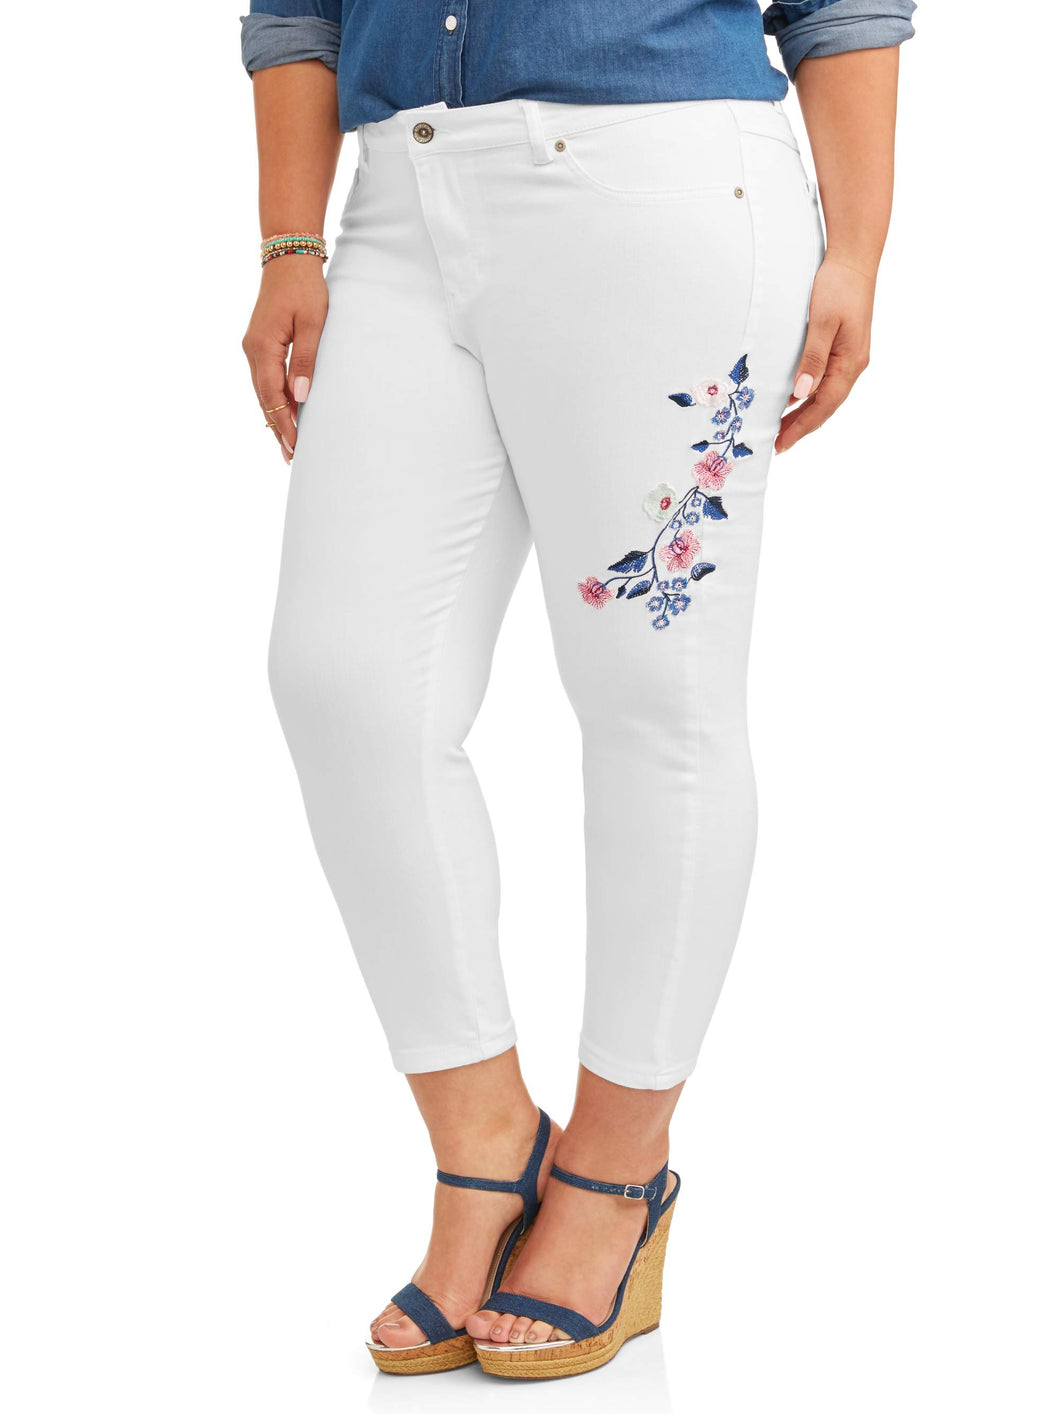 Women's Plus Embroidered Denim Capri JeanWomen's Plus Embroidered Denim Capri Jean - kats closet1